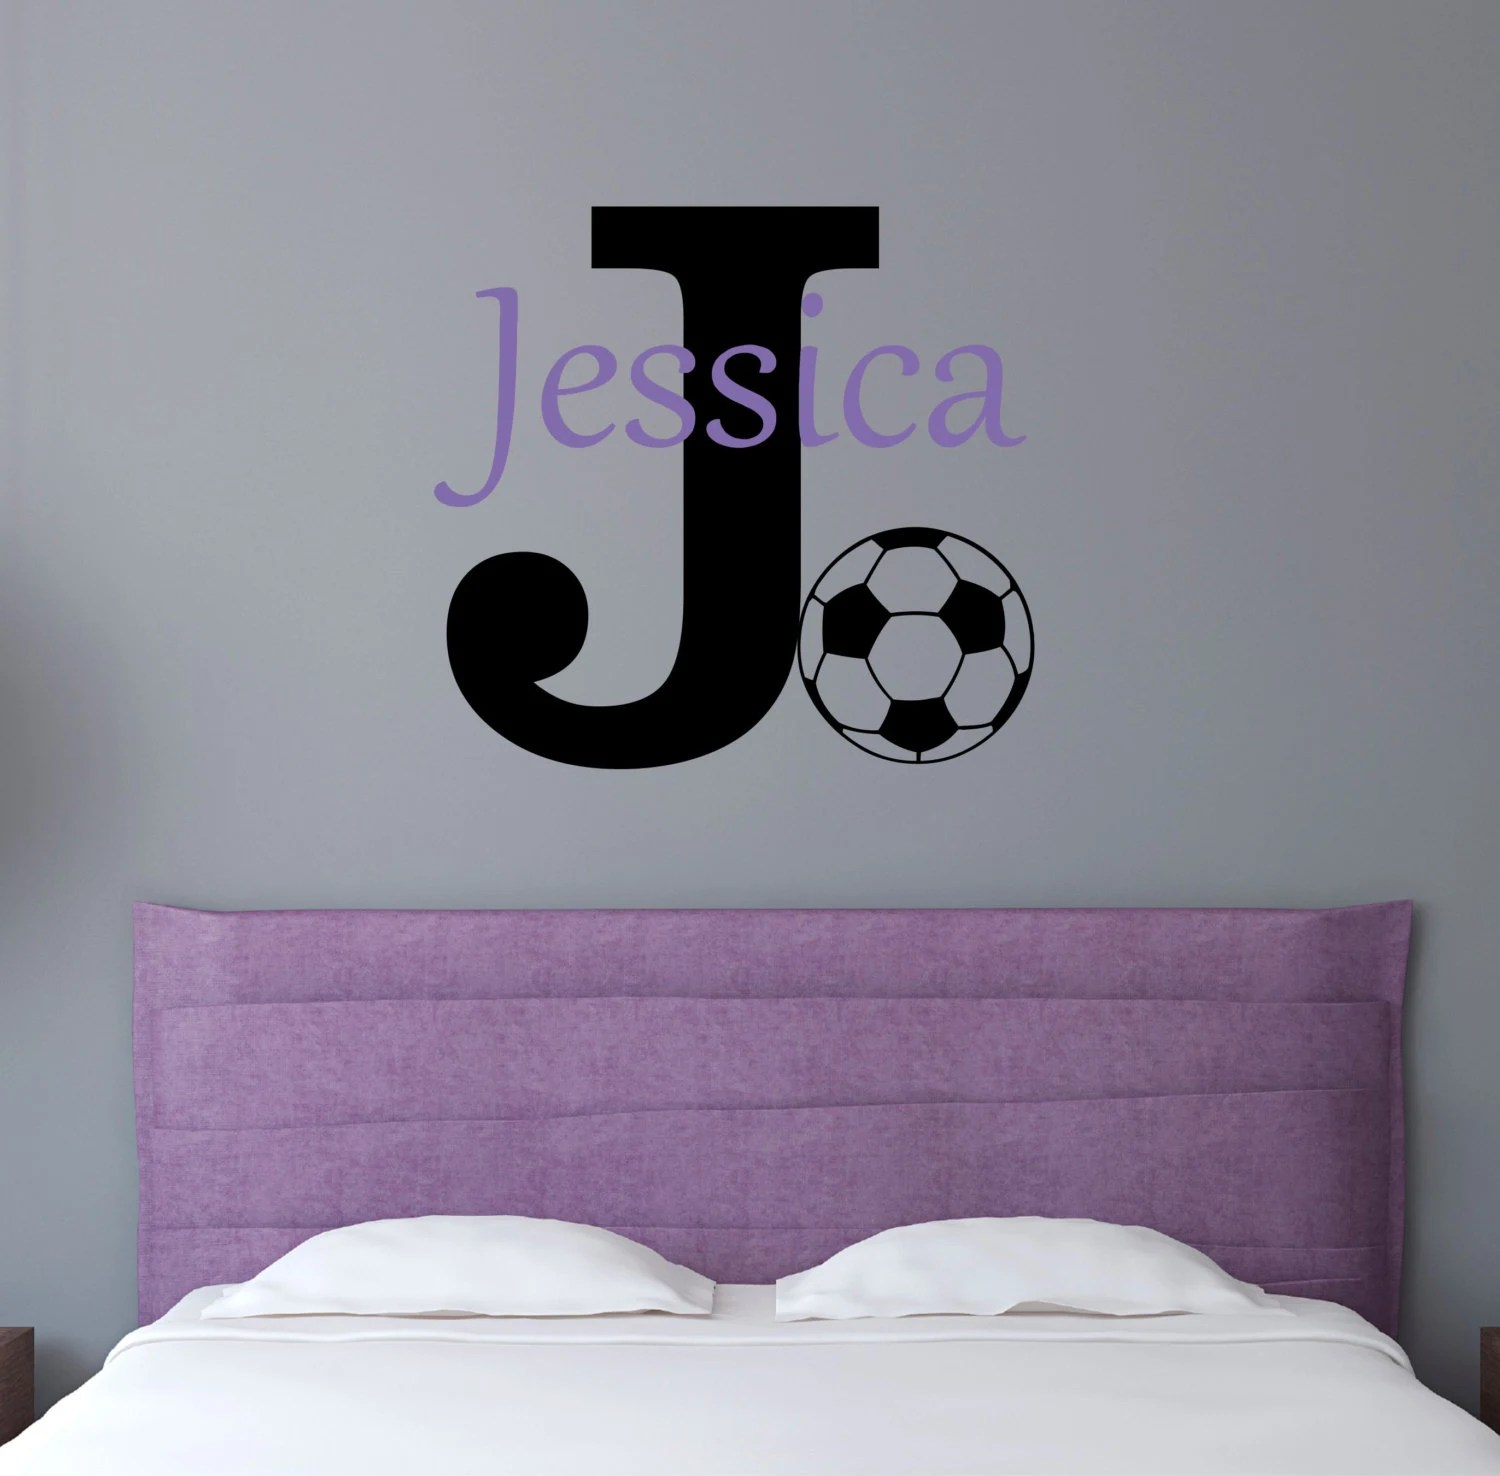 Personalized Name Soccer Wall Decal Sticker